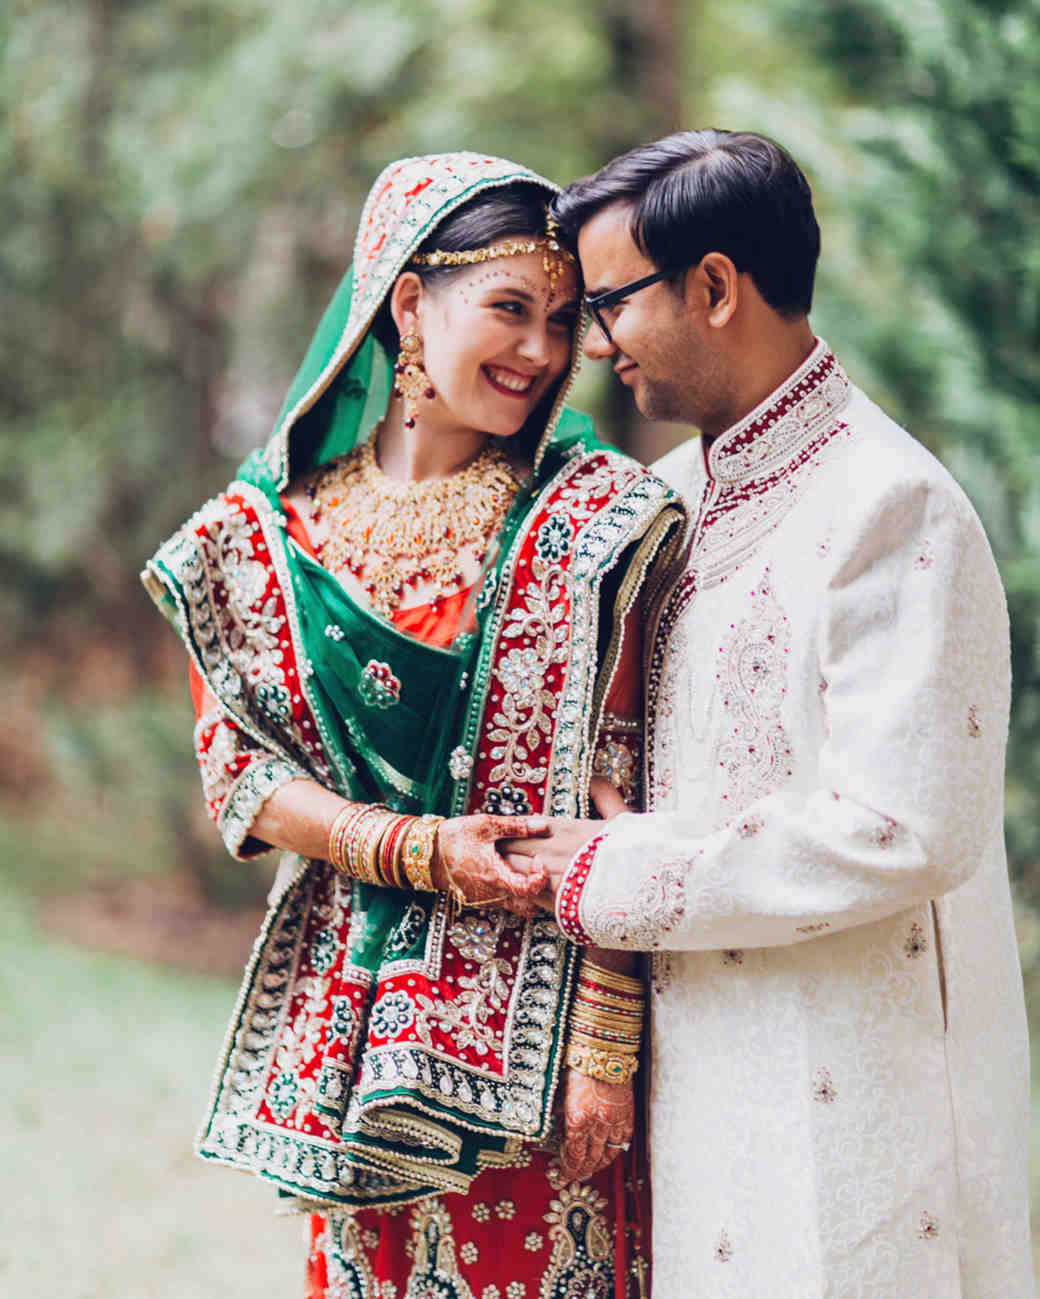 thea-rachit-wedding-couple-1856t-s112016-0715.jpg